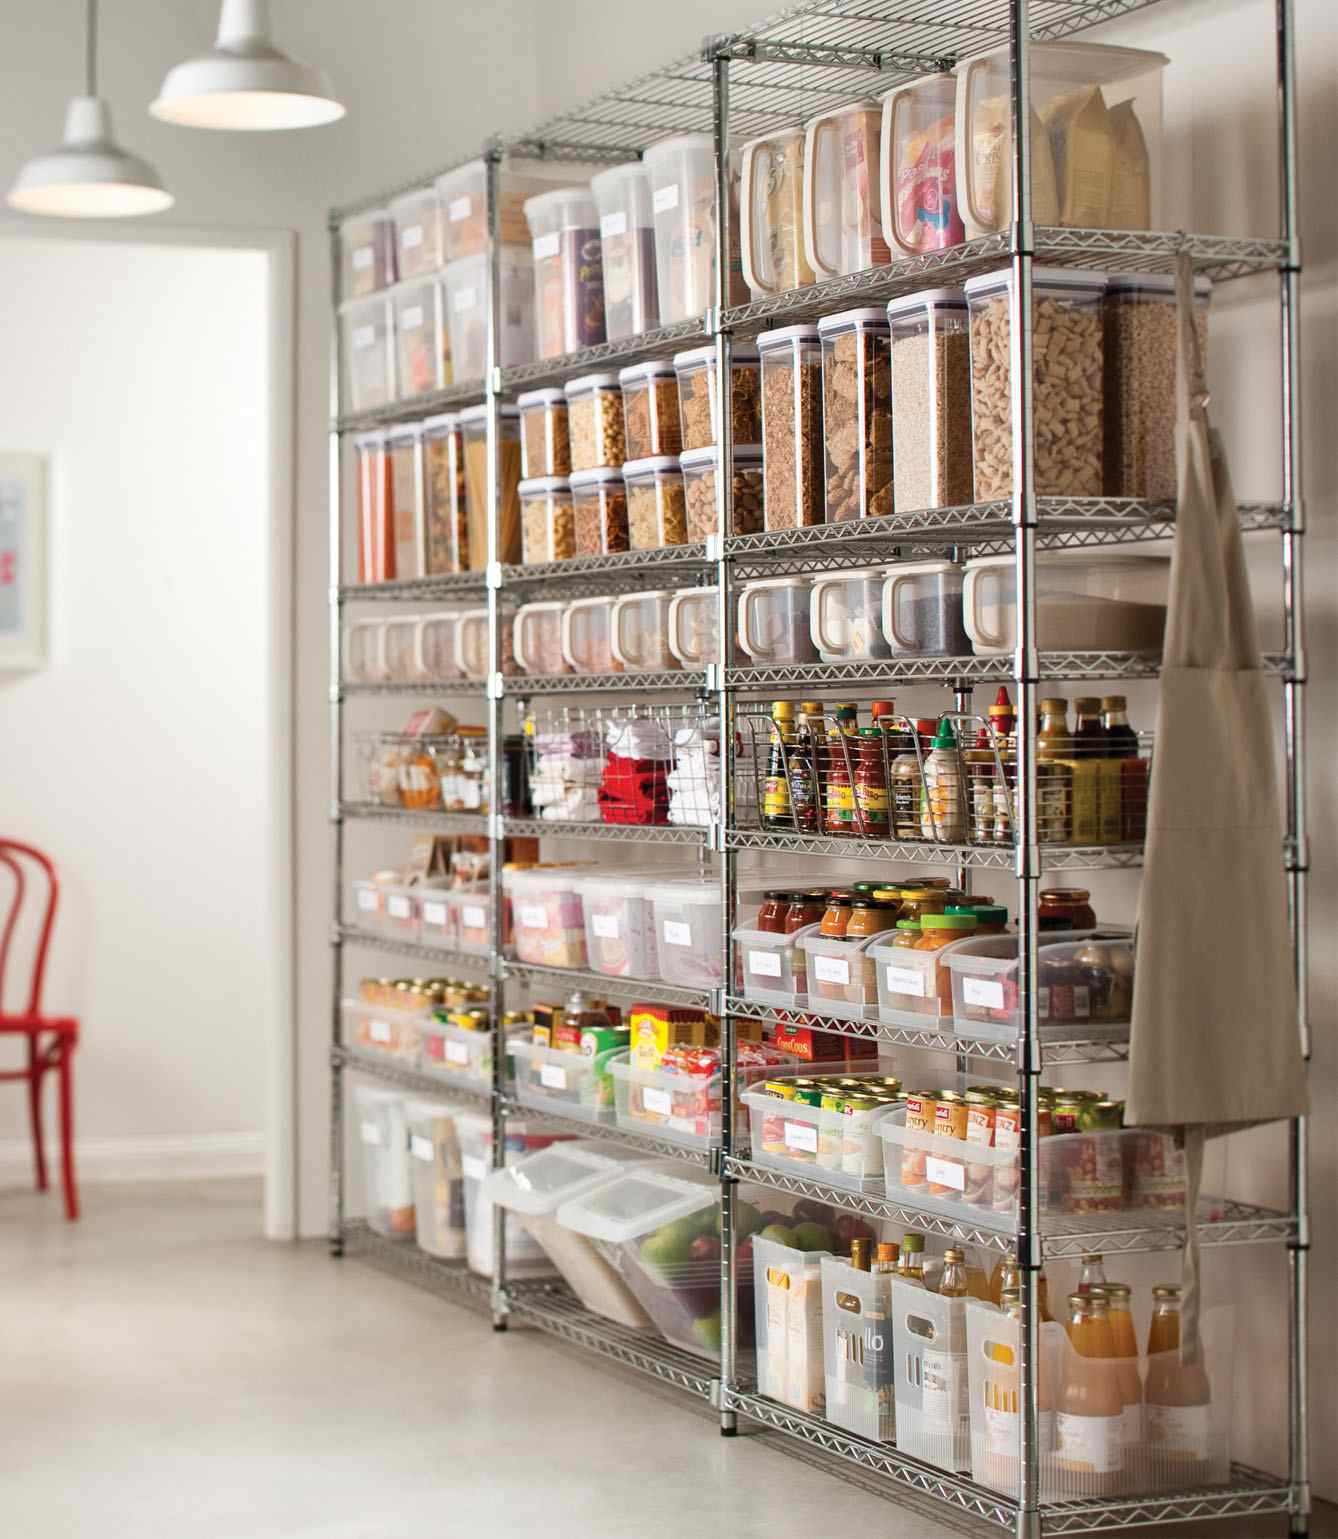 impressive pinterest tjihome astonishing built photos of open kitchens ideas kitche on storage inspiration white door small kitchen trends in closets and files pantry diy for amazing